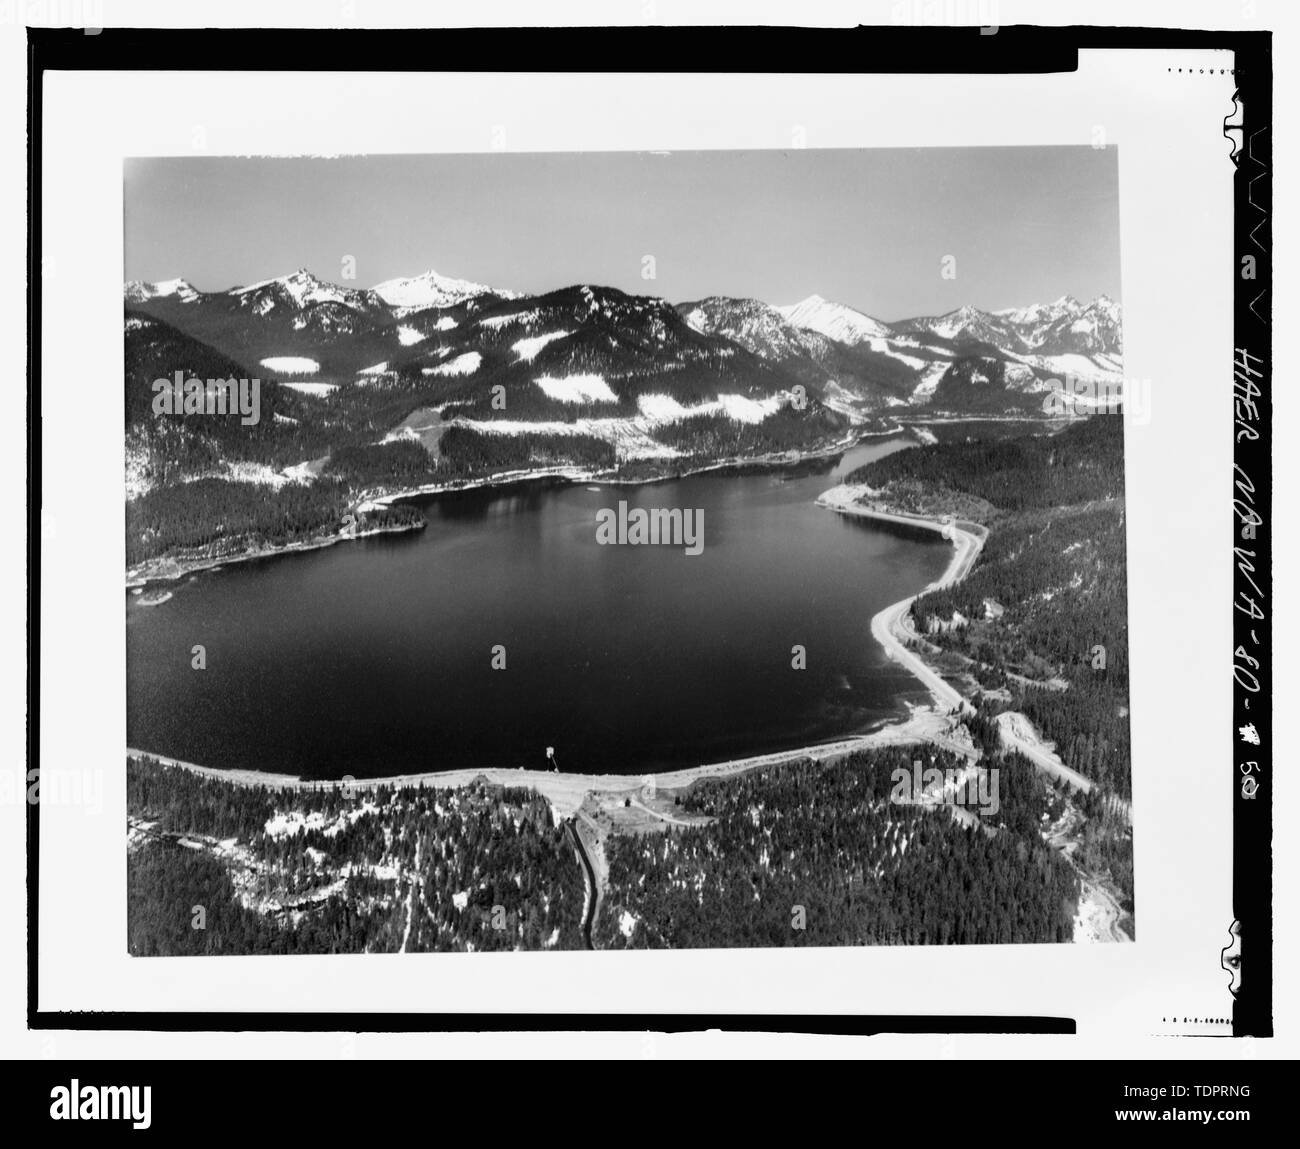 Boise Aerial Black and White Stock Photos & Images - Alamy